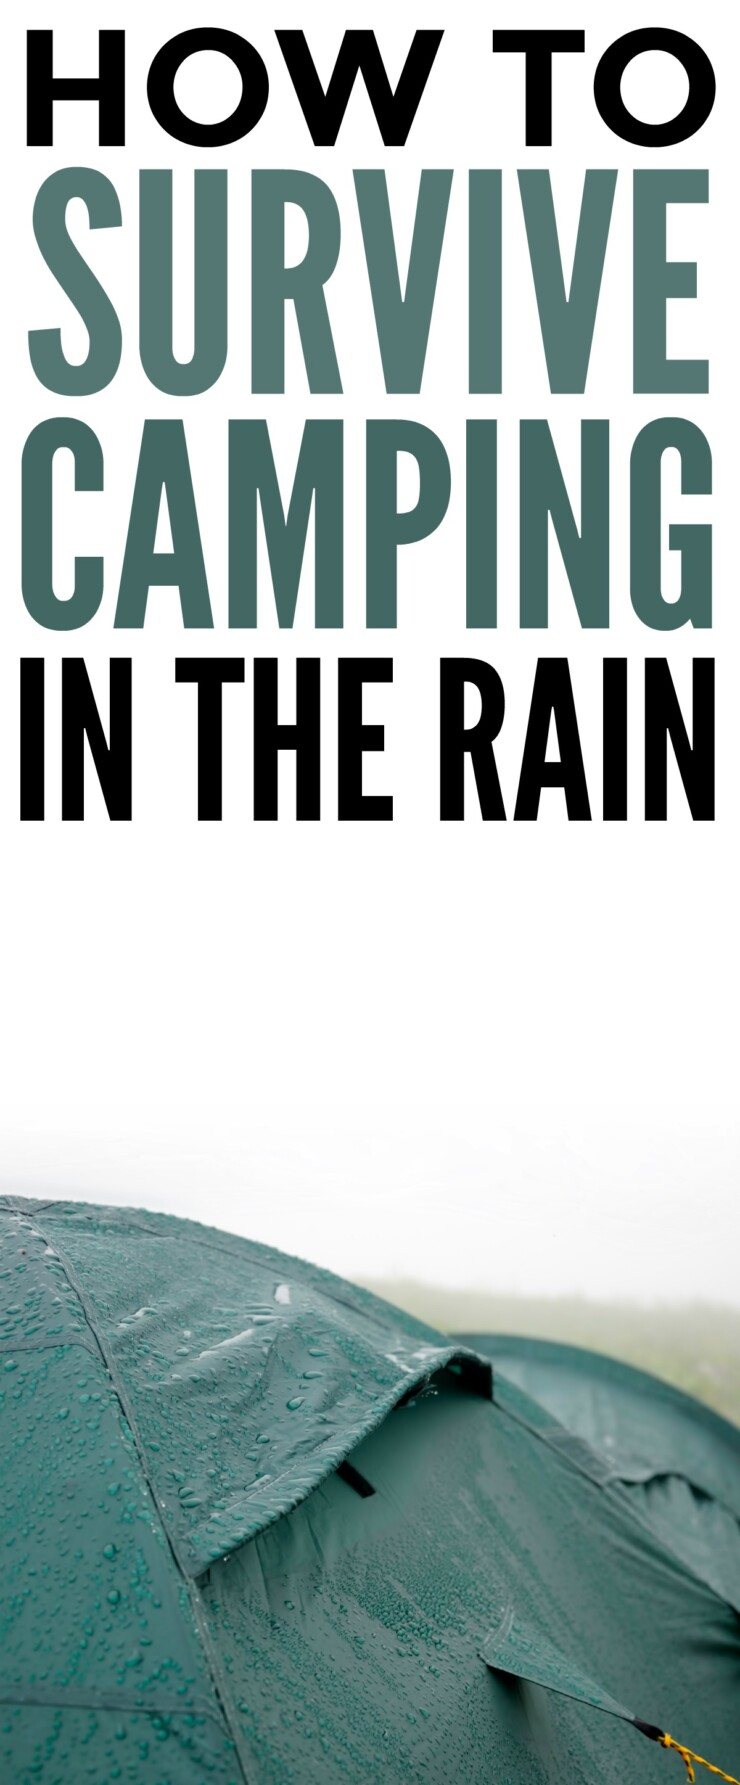 How to Survive Camping in the Rain